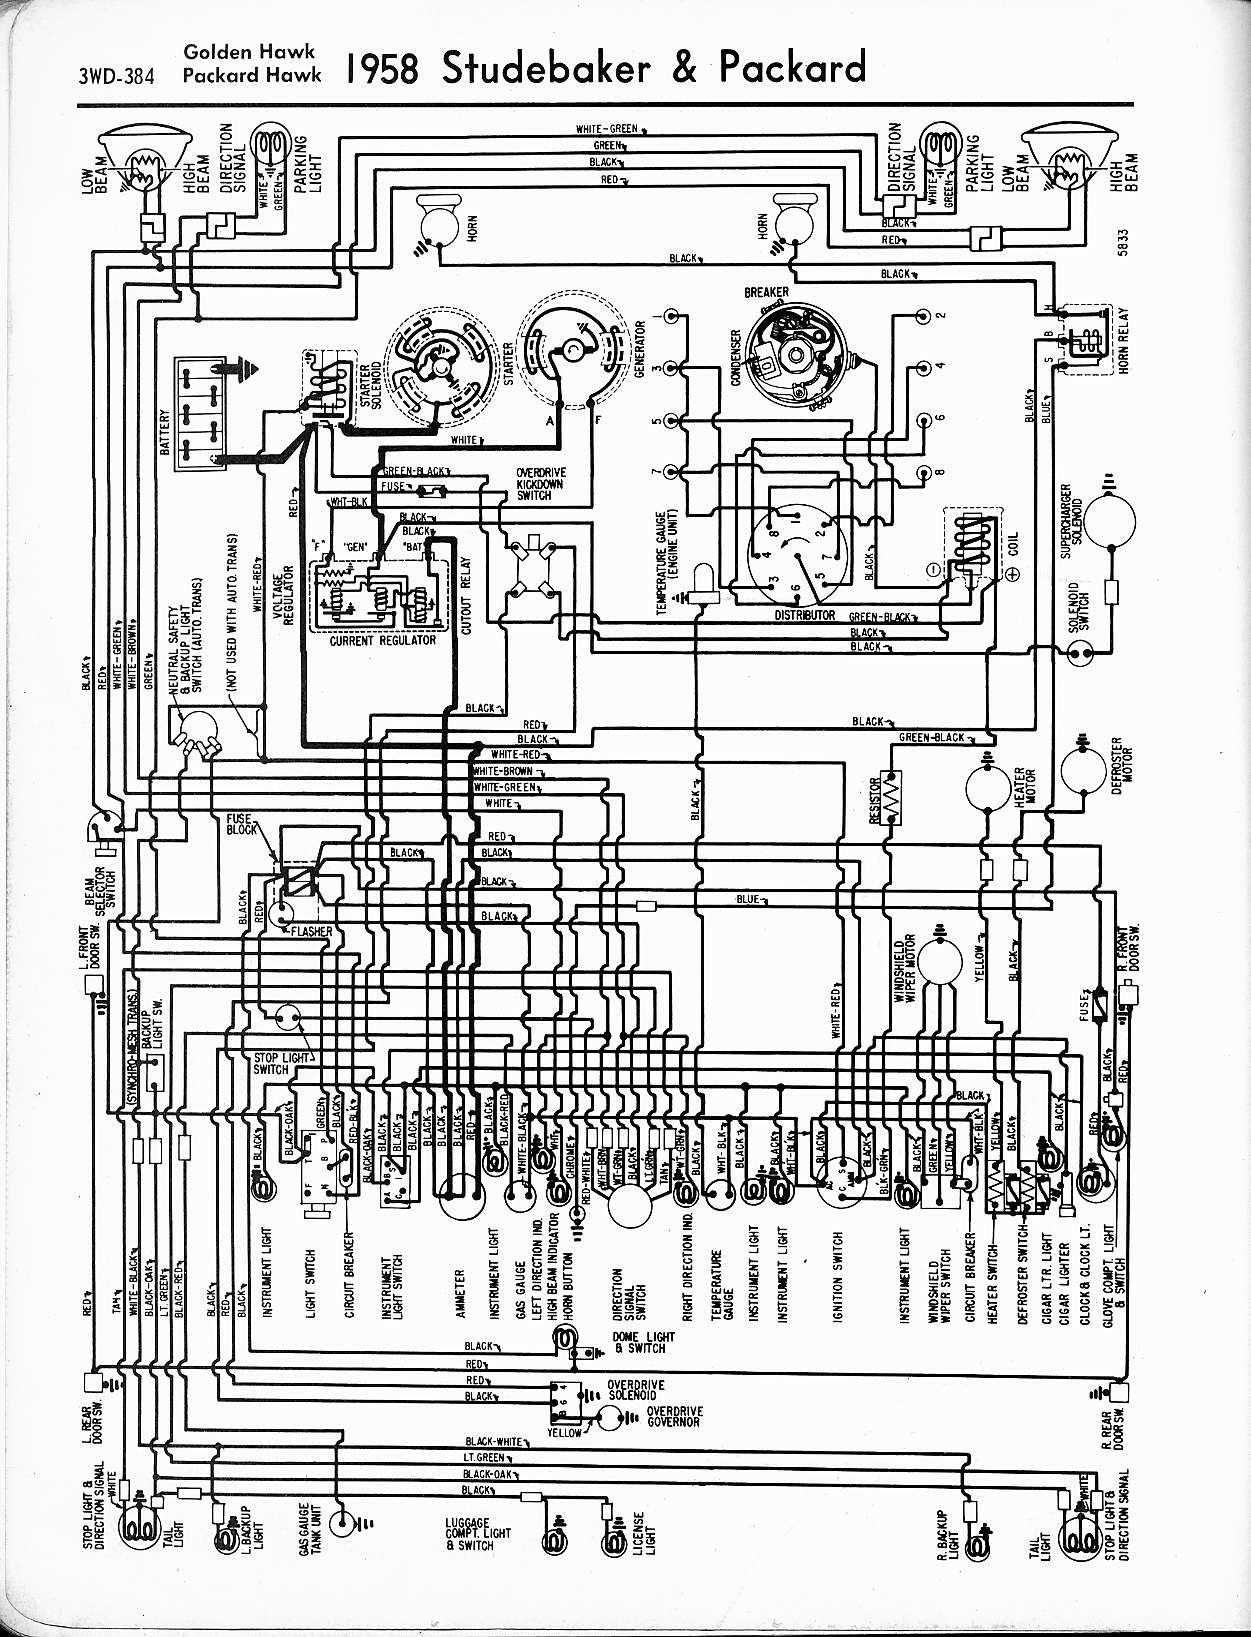 MWire5765 384 1948 packard wiring diagram on 1948 download wirning diagrams 1955 pontiac star chief wiring diagram at crackthecode.co